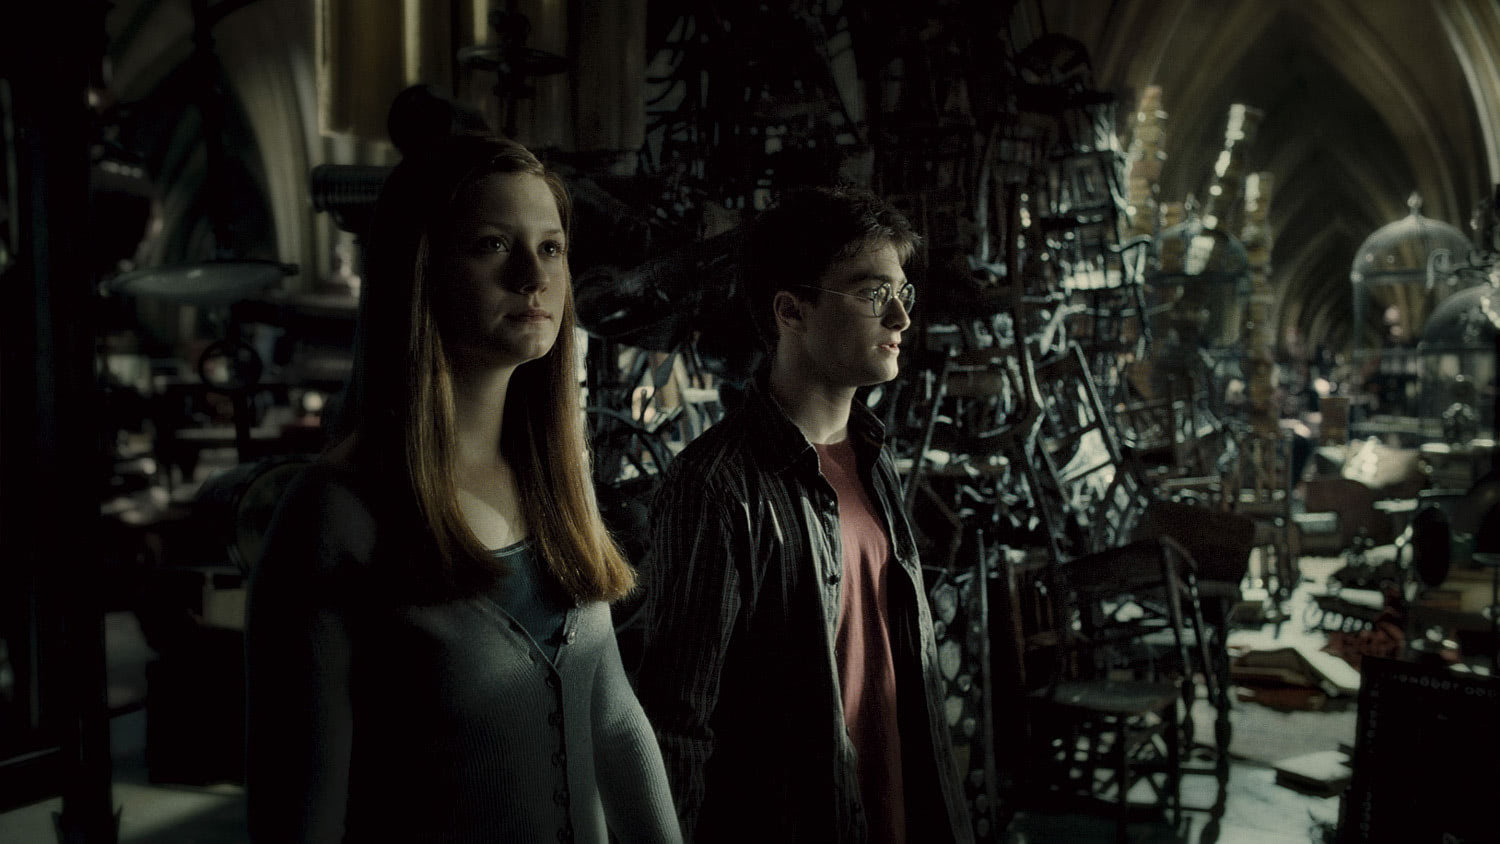 Harry and Ginny in the Room of Requirement